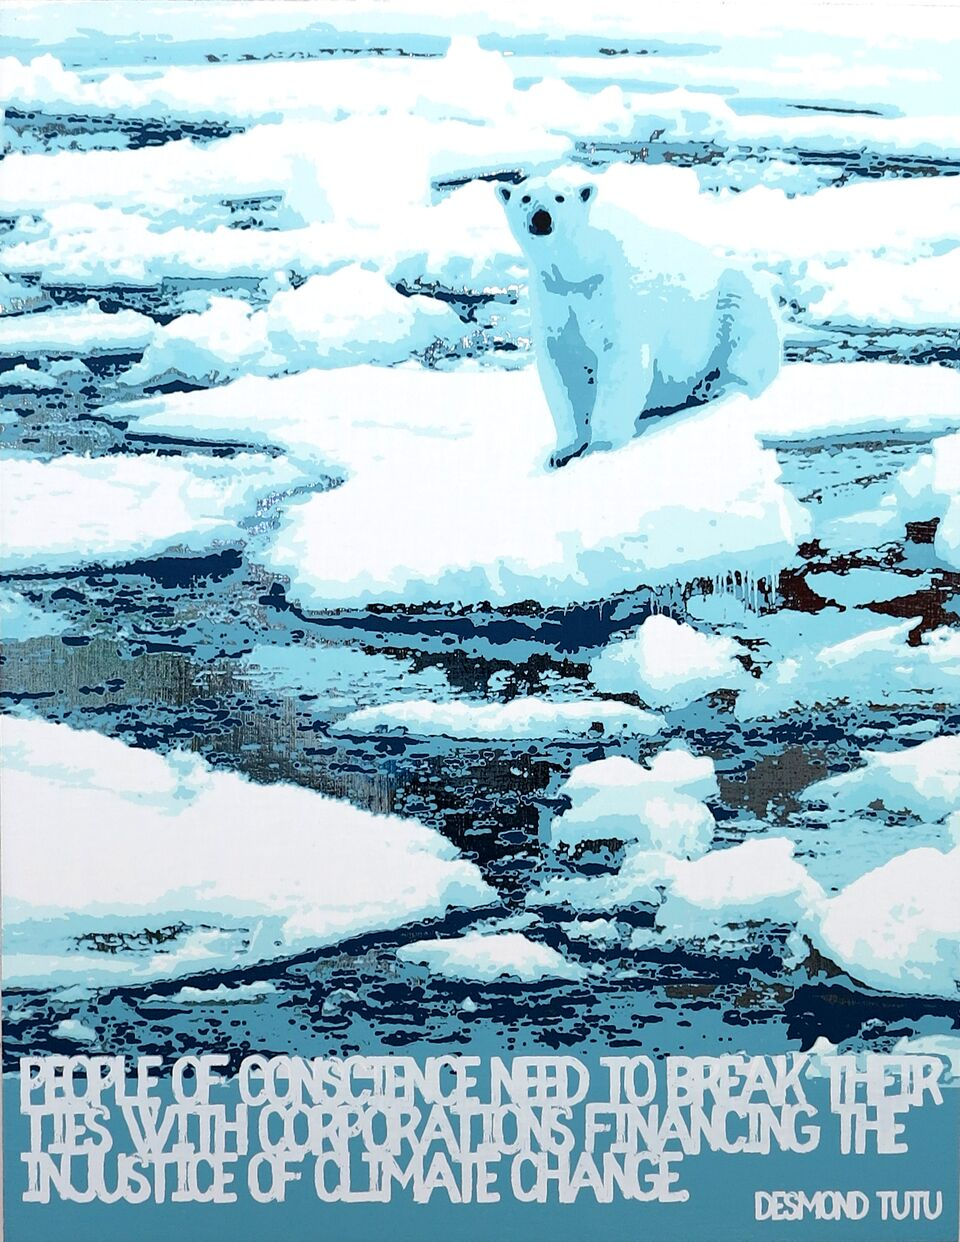 Polar Bear/Global Warming (Desmond Tutu)